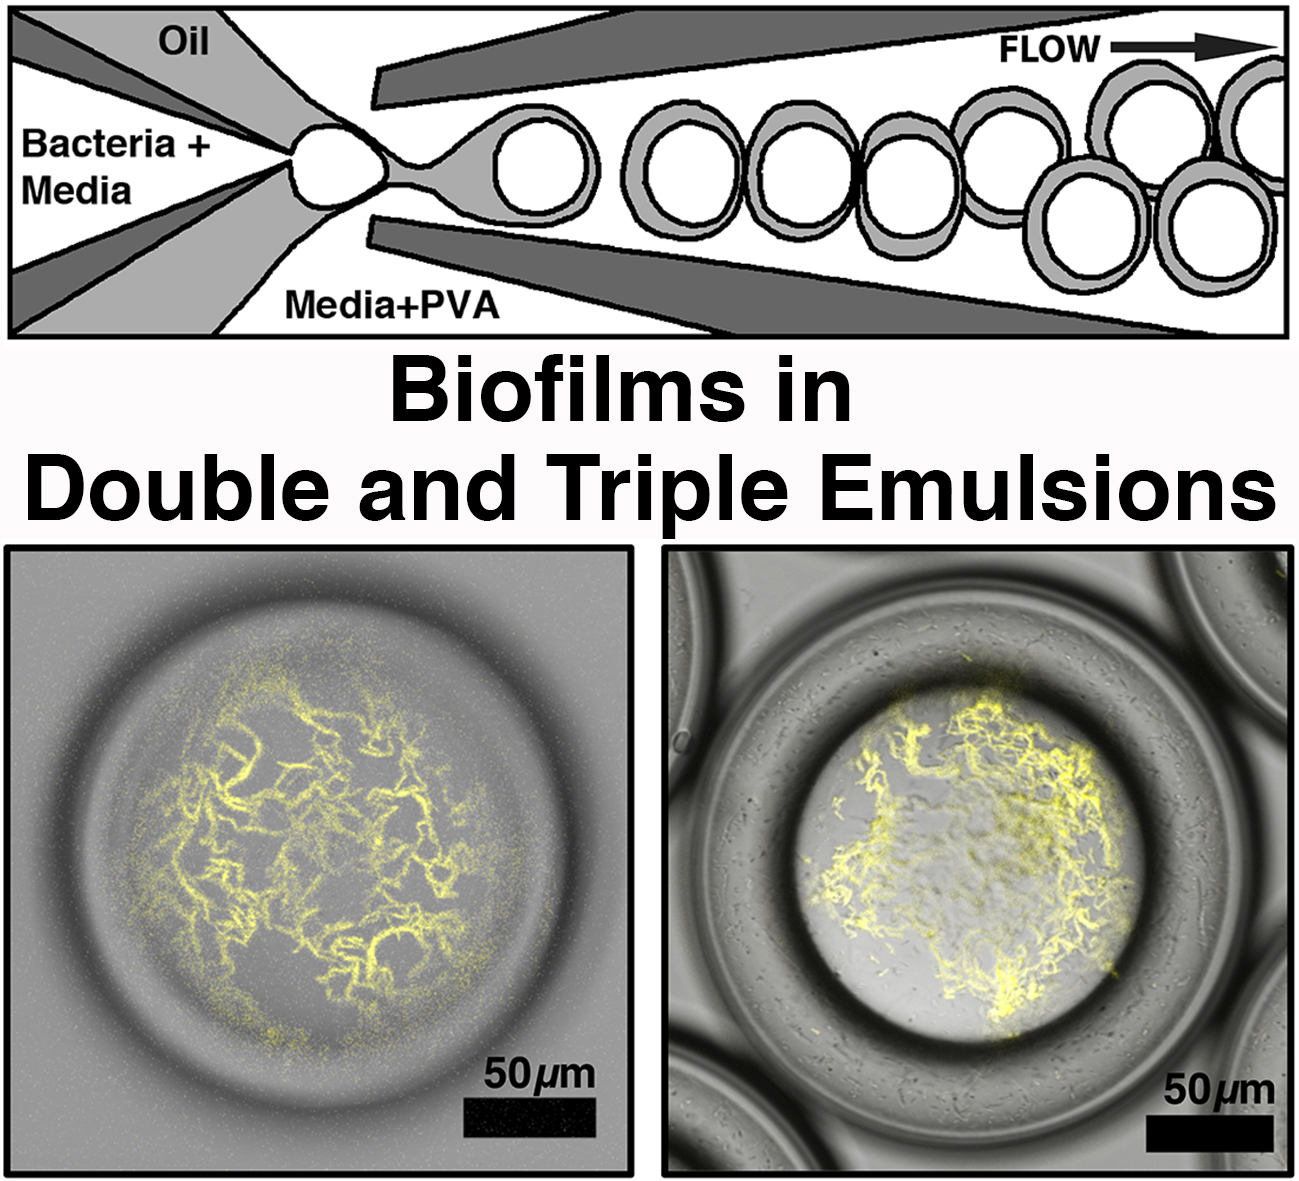 biofilms in double and triple emulsions